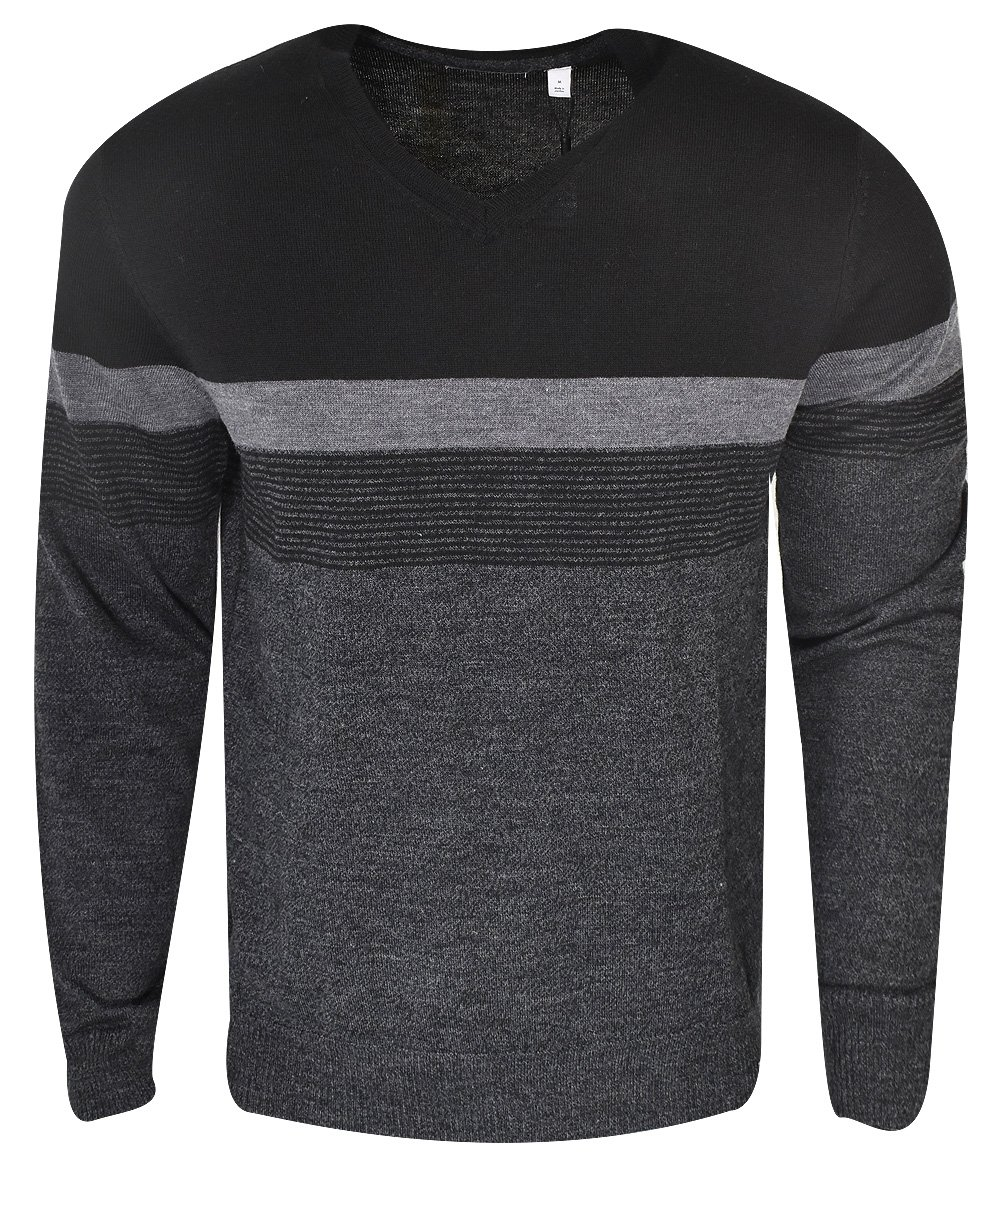 Calvin Klein Men's Merino V-Neck Sweater, Black Jack Combo, 2X-Large